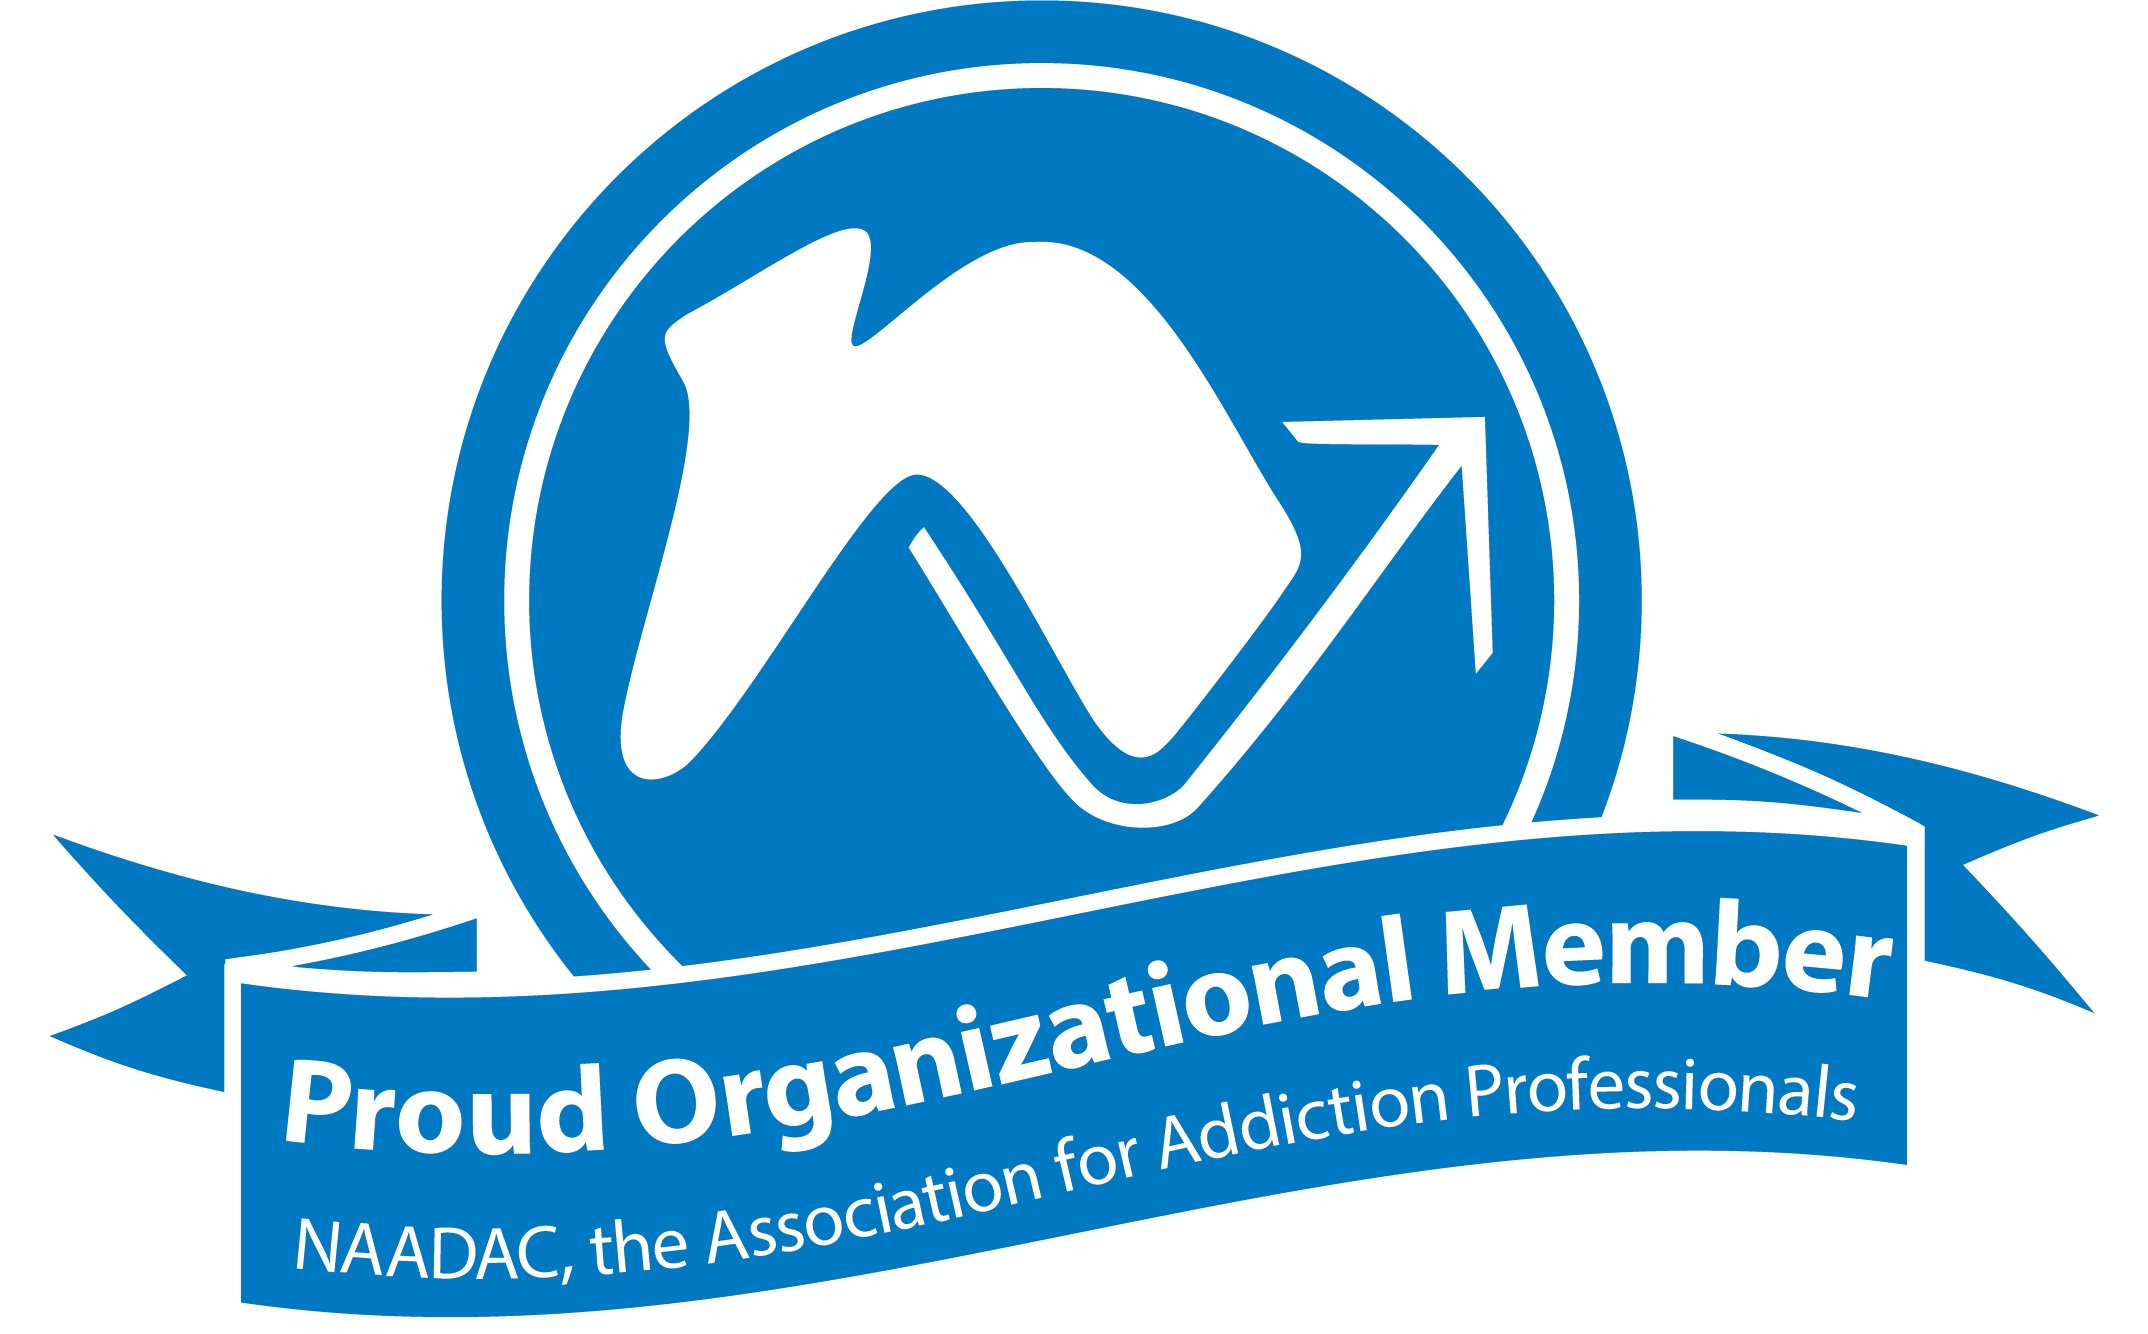 NAADC The Association For Addiction Professionals